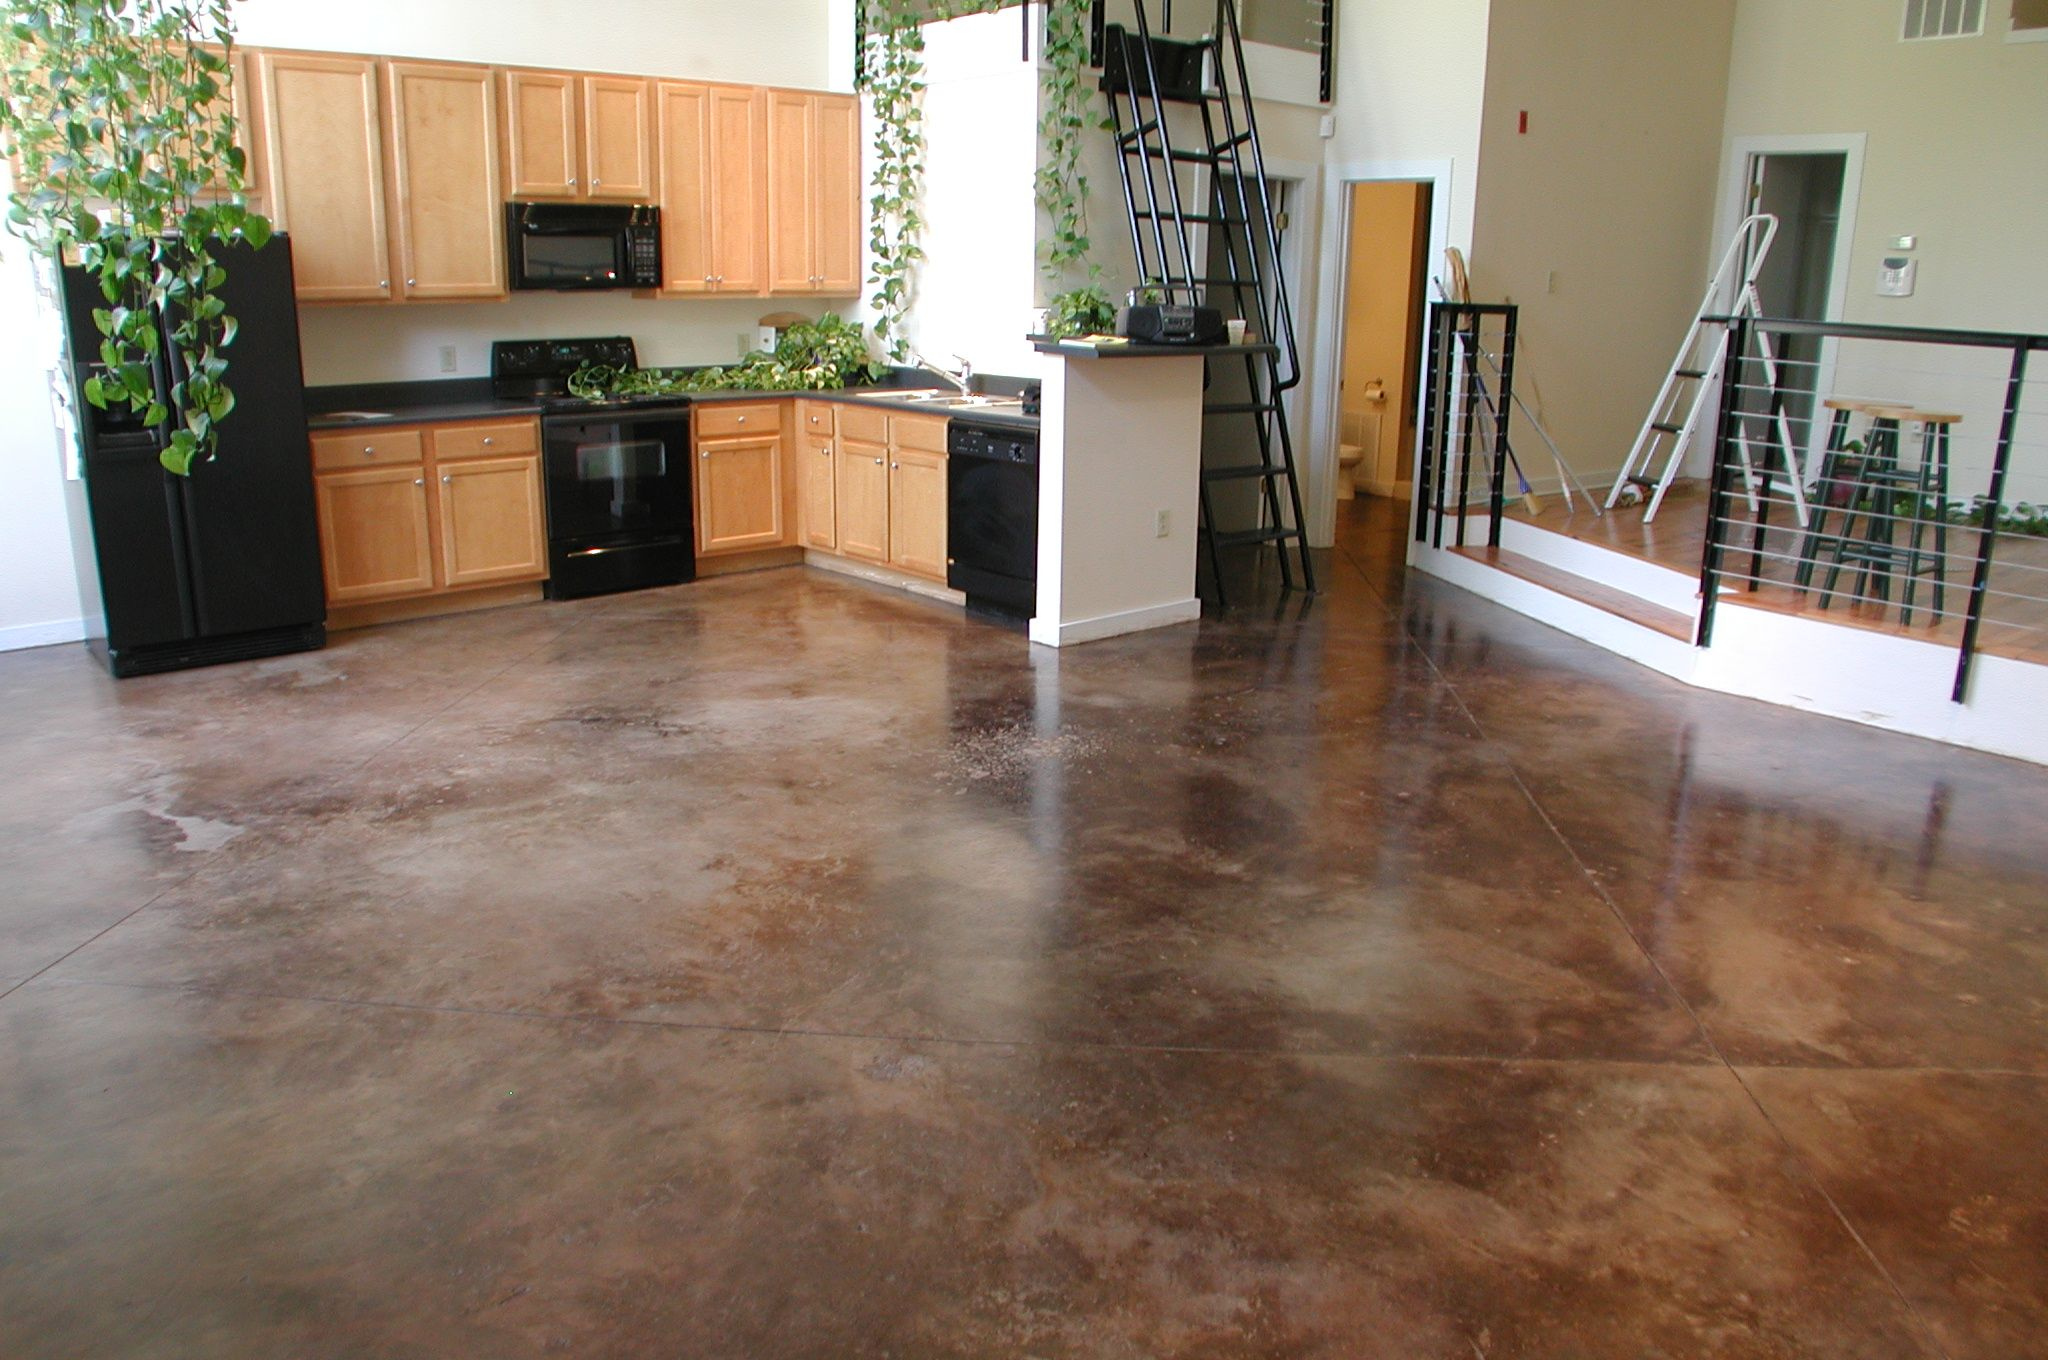 lowes patio garage painting img interesting epoxy floor concrete paint